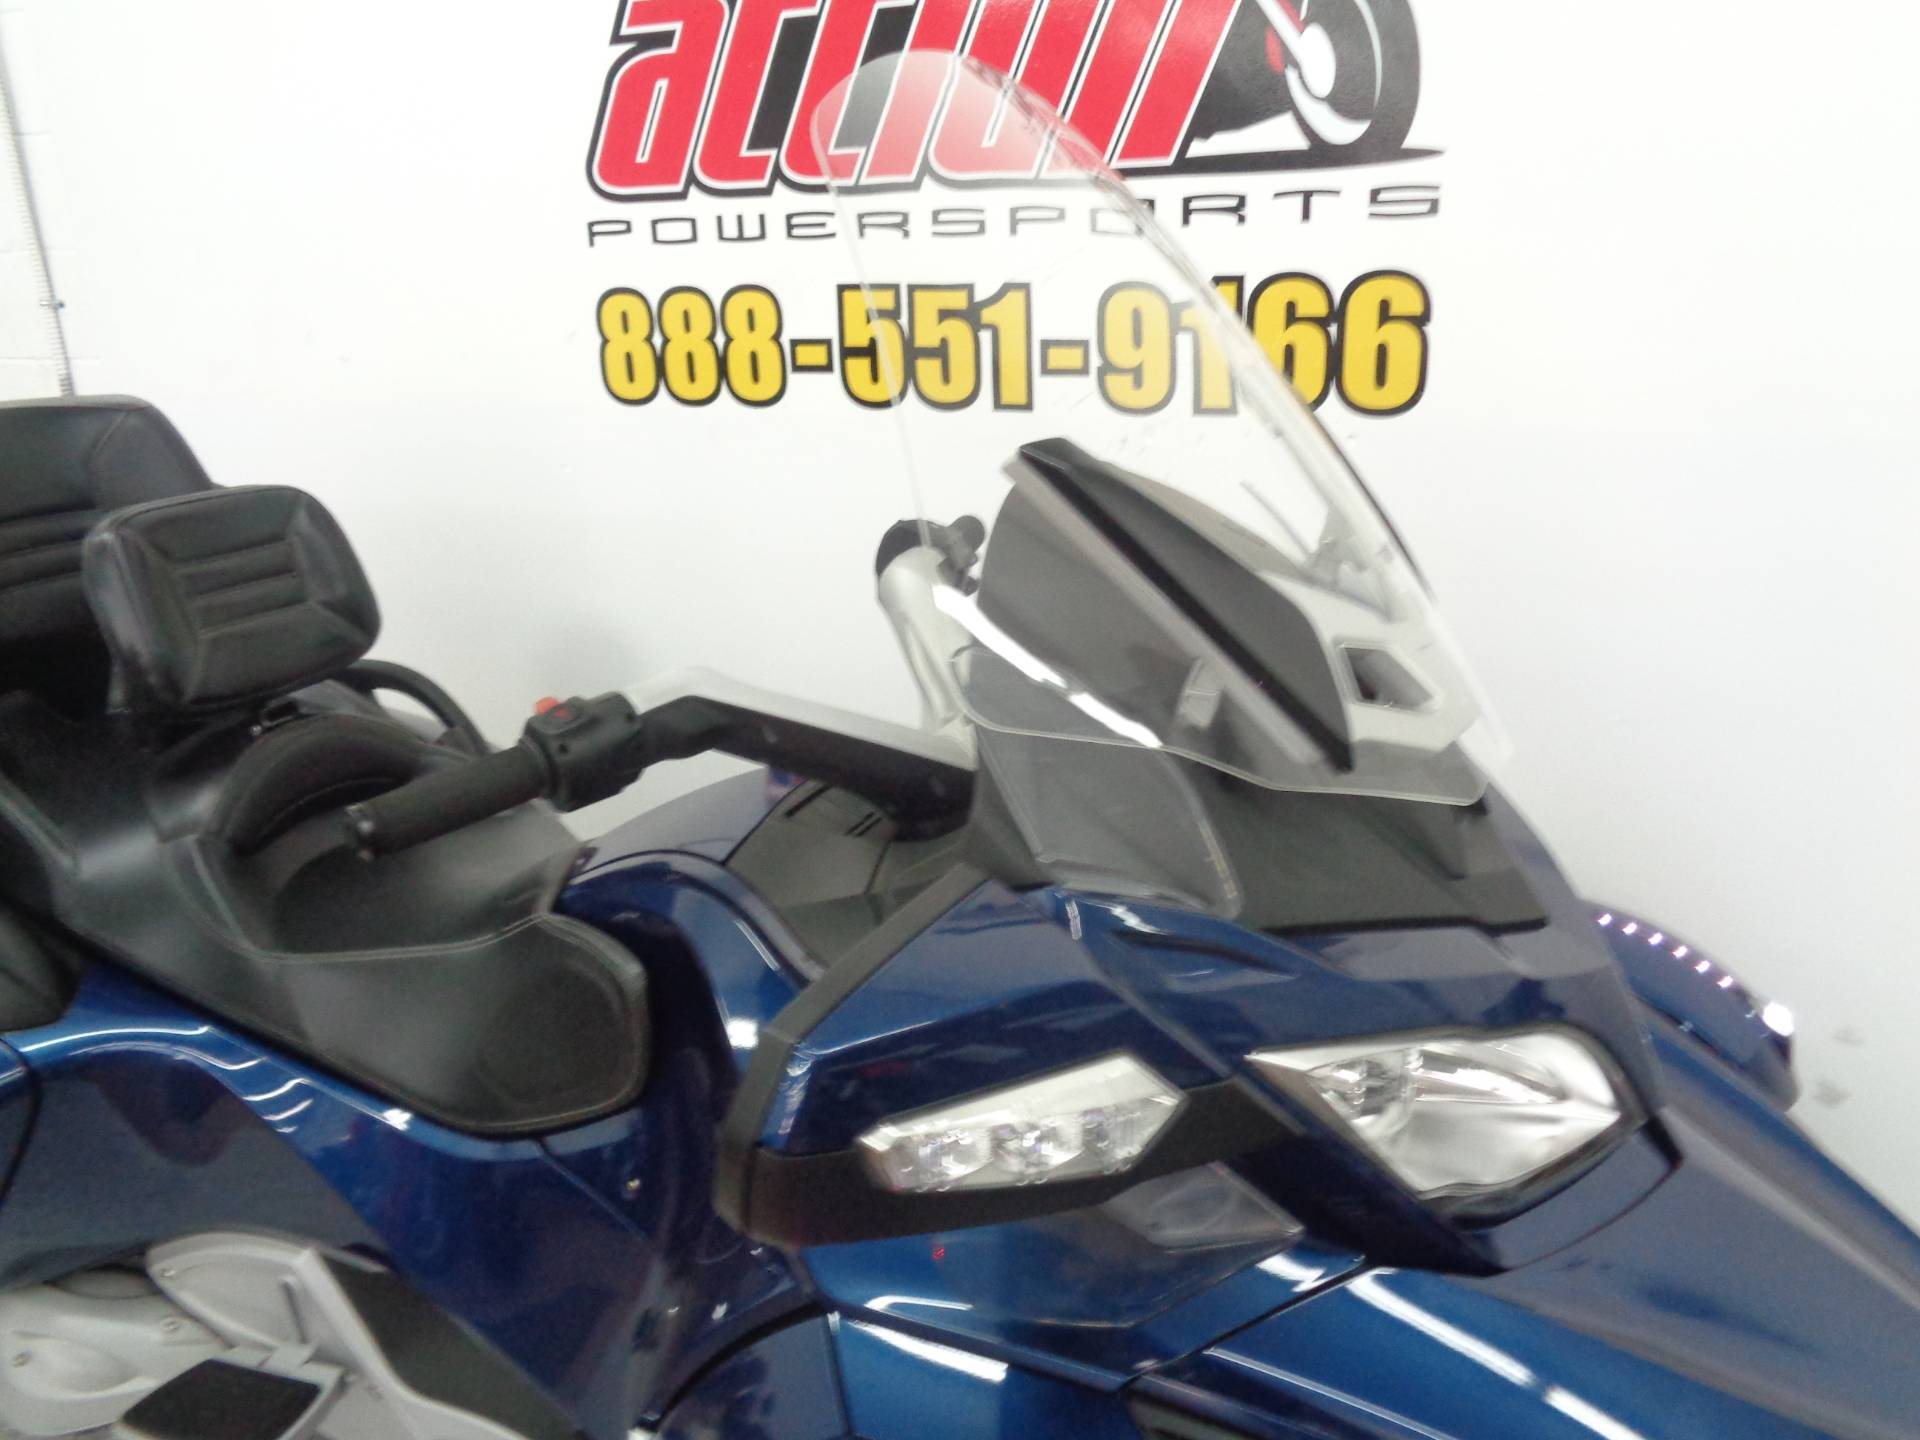 2010 Can-Am Spyder® RT Audio & Convenience SE5 in Tulsa, Oklahoma - Photo 3